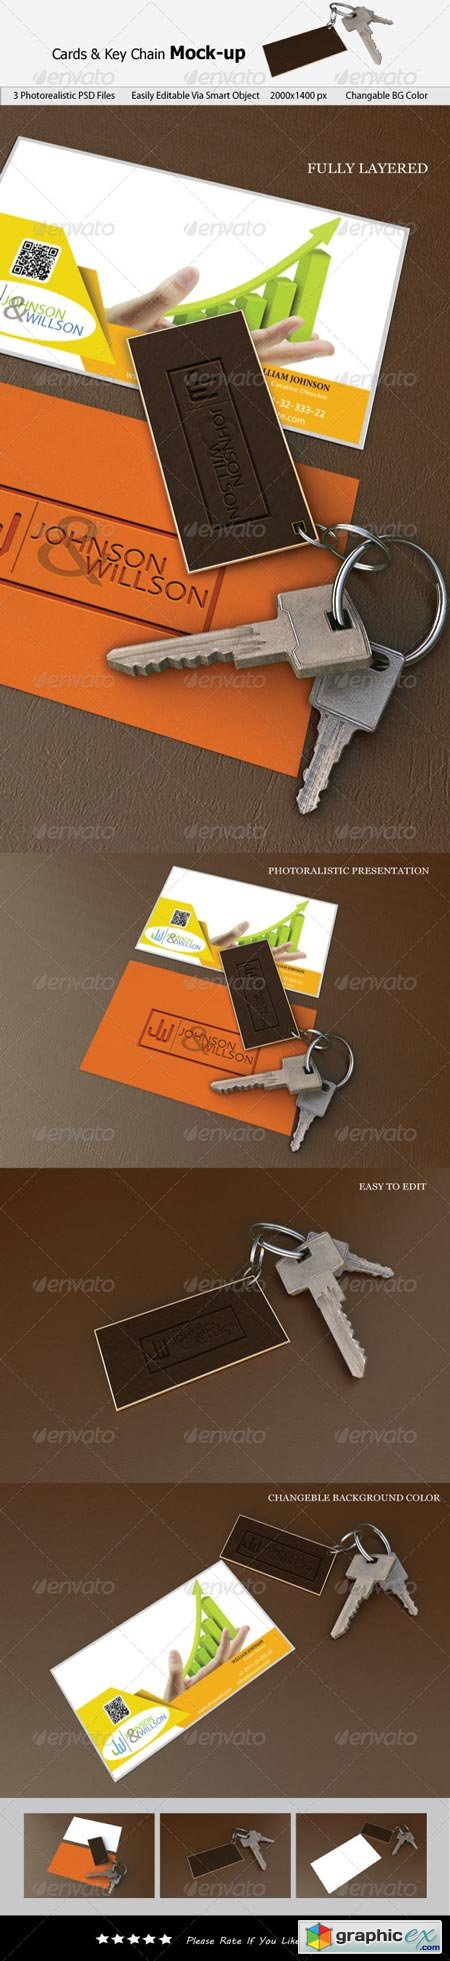 Cards & Key Chain Mock-up